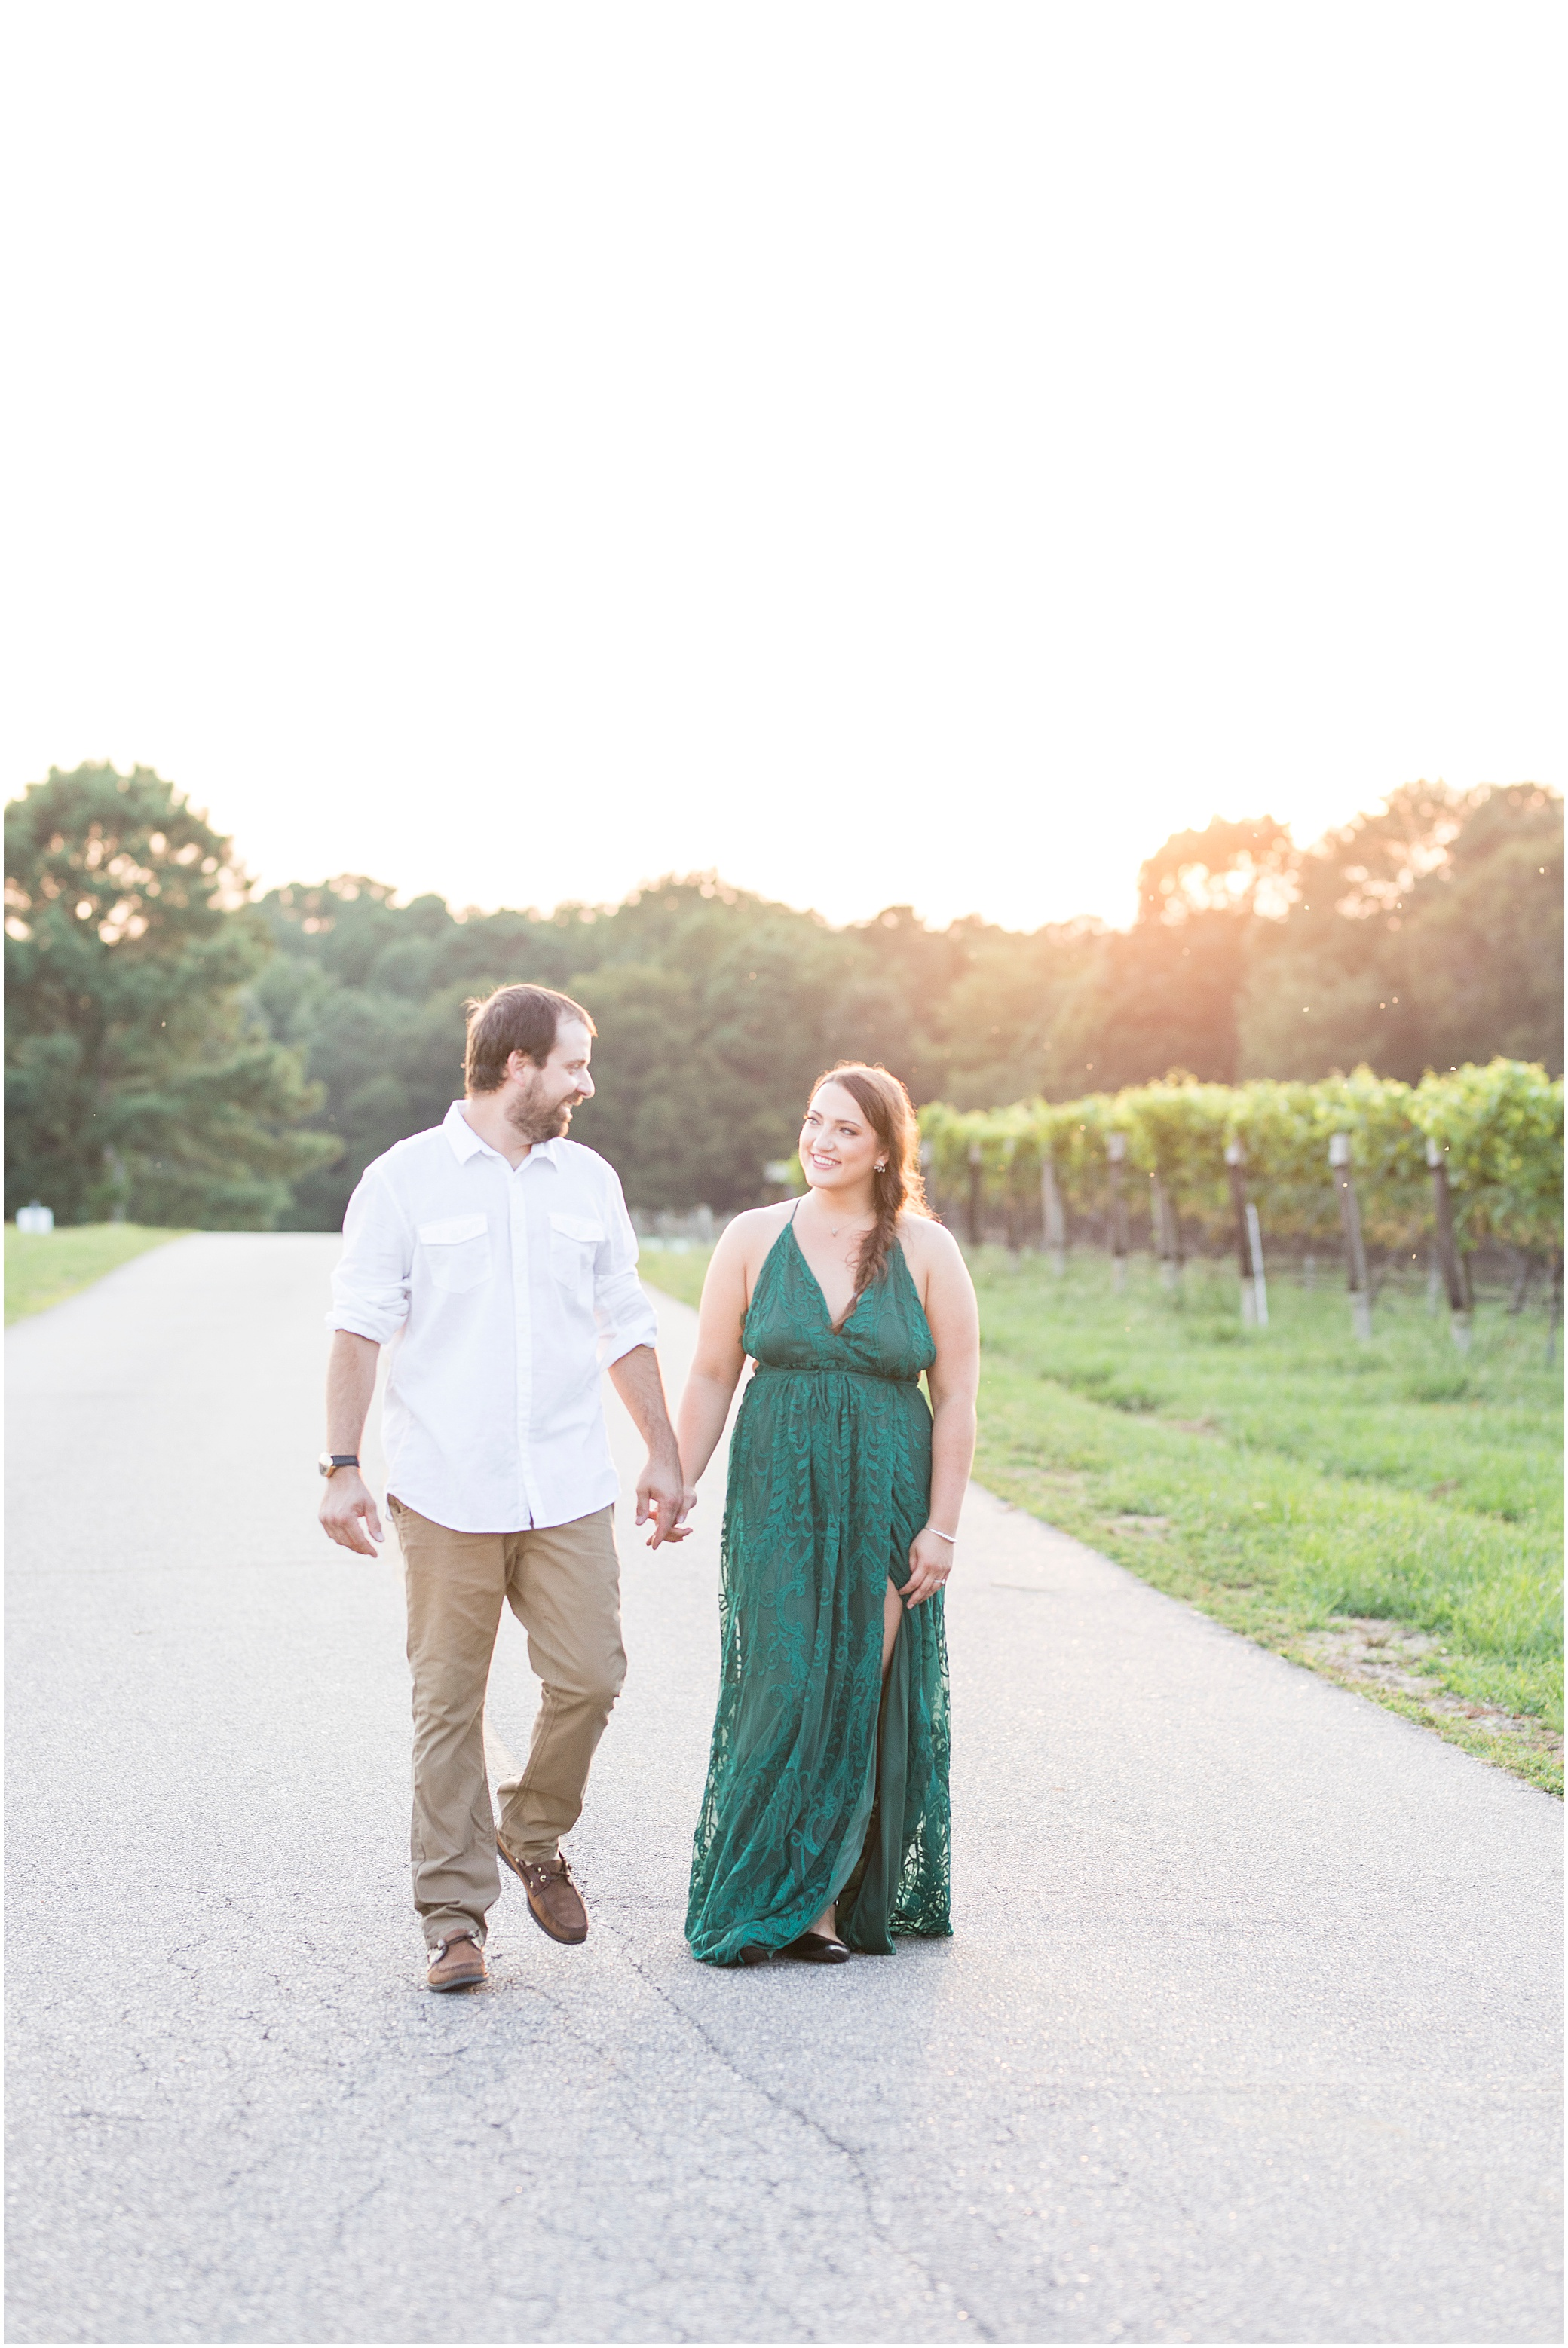 Williamsburg winery, Williamsburg engagement photography